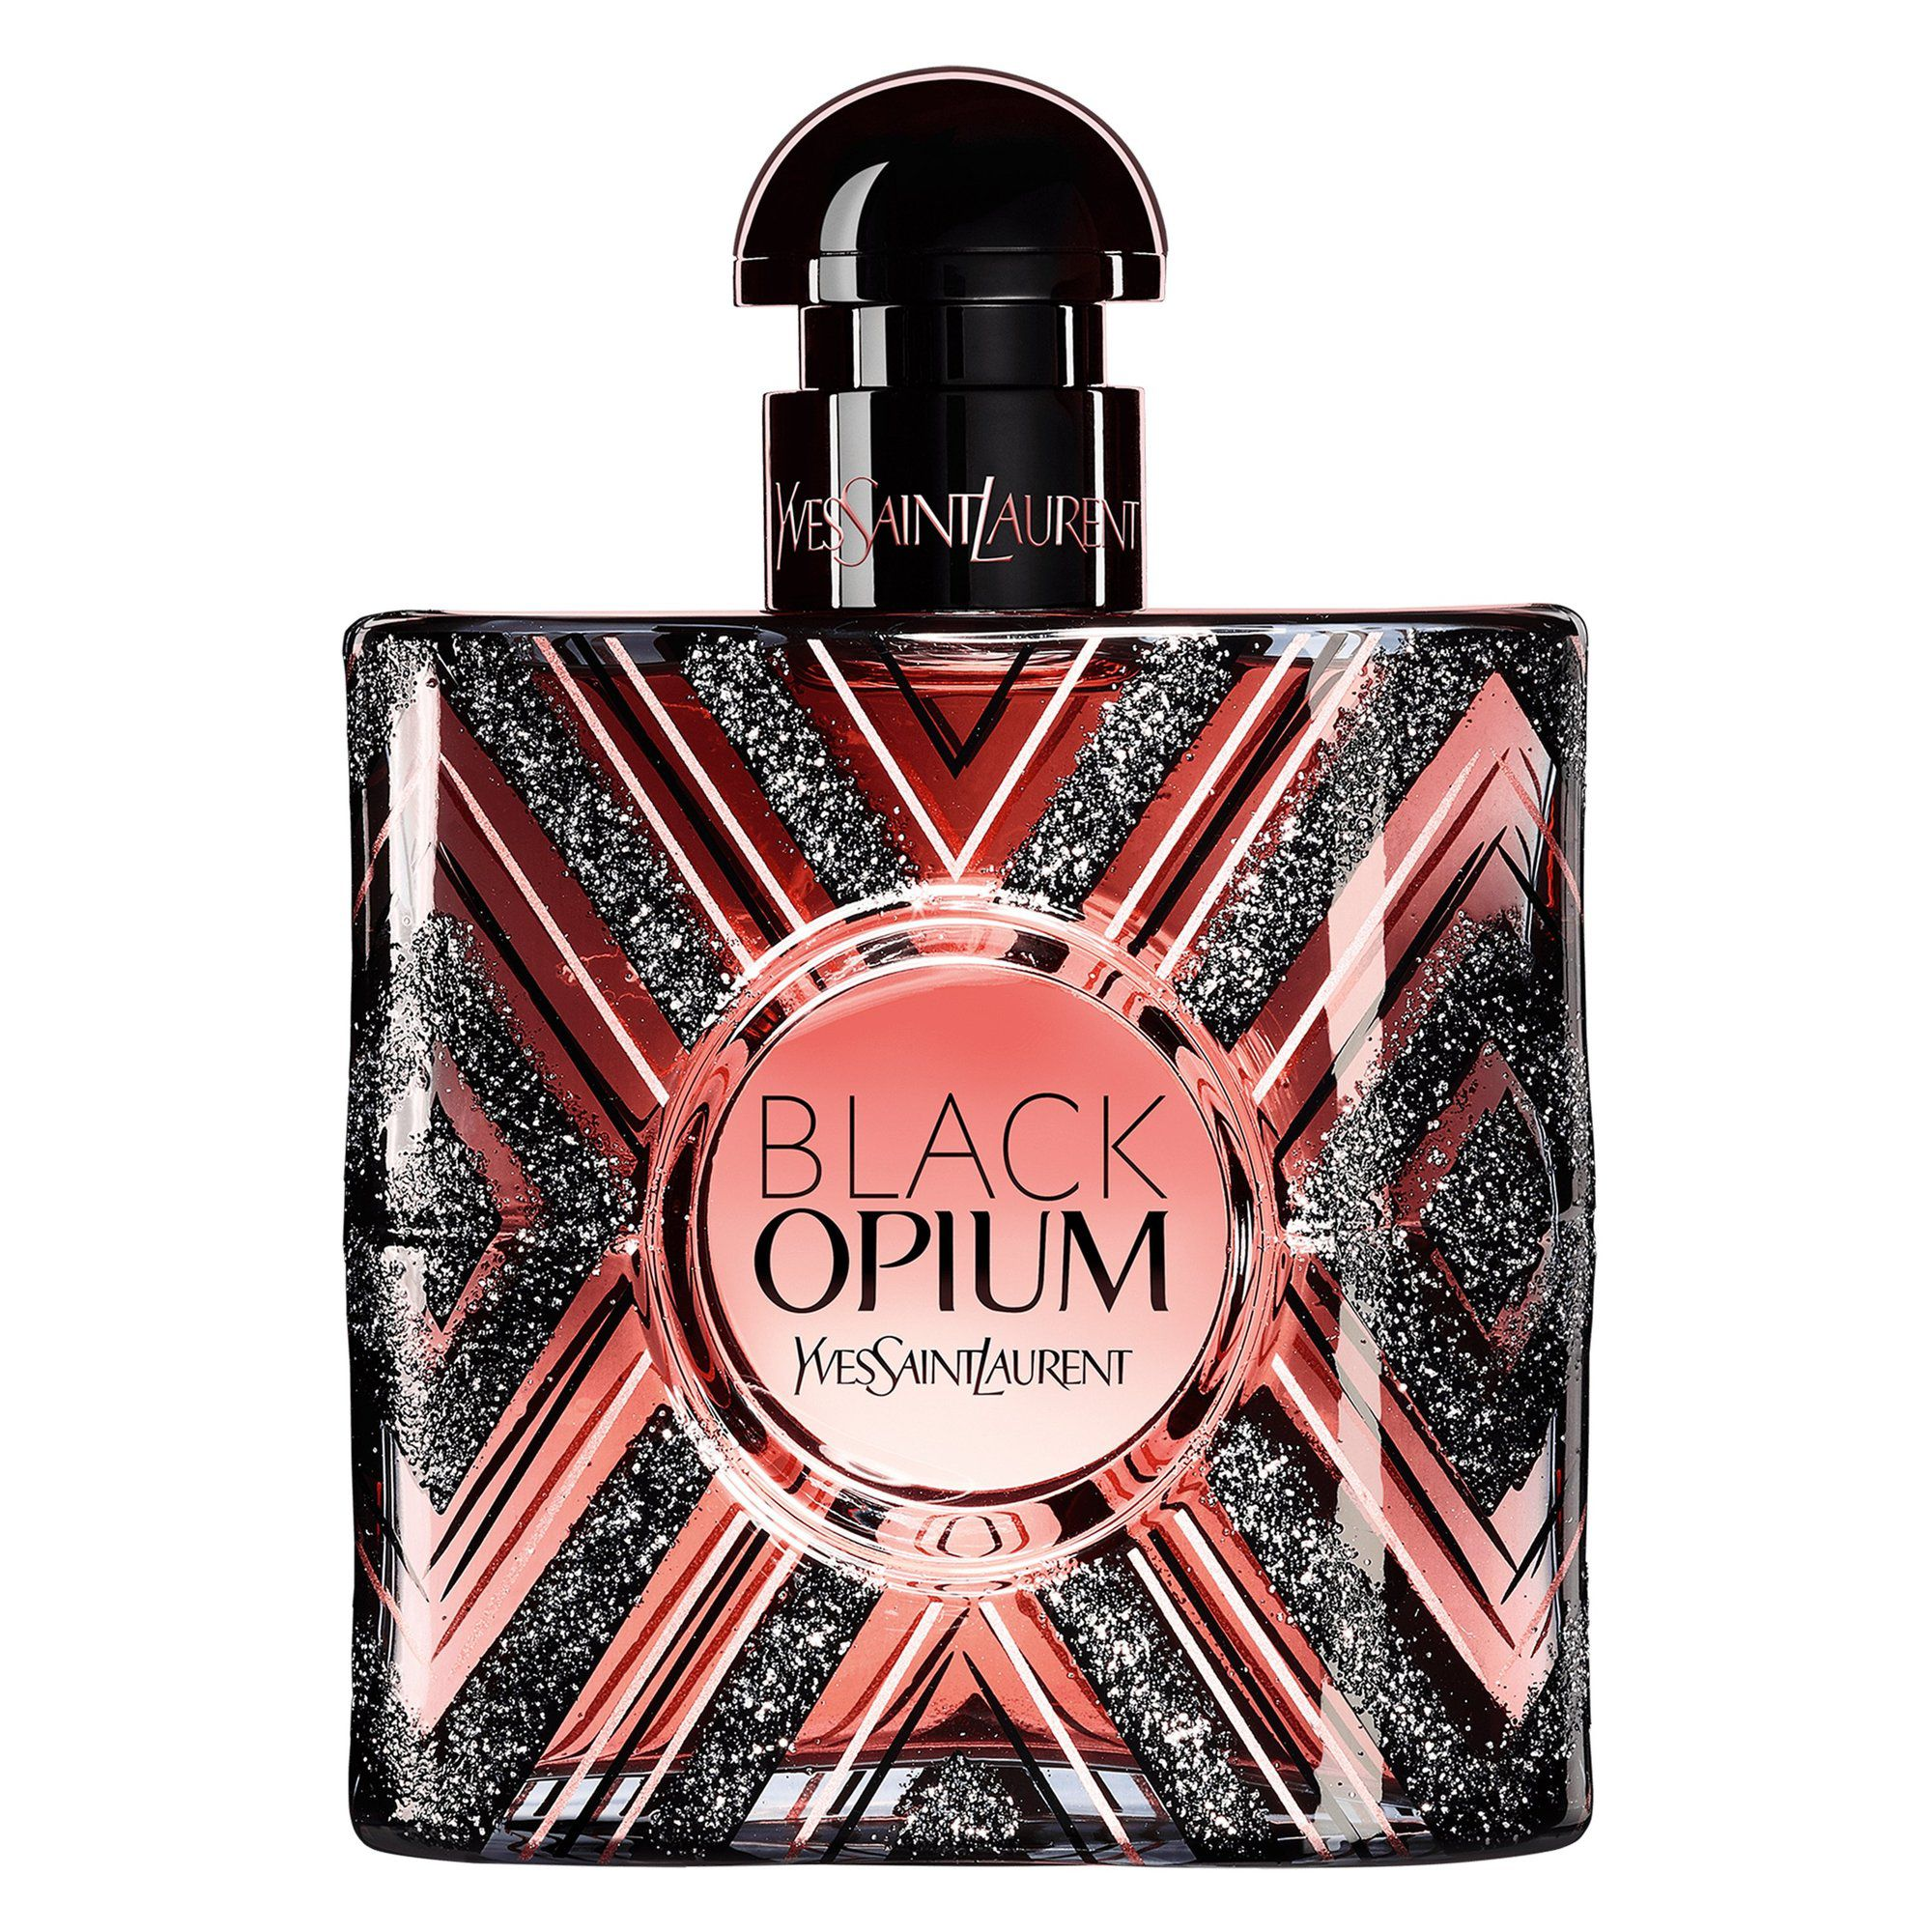 Yves Saint Laurent Black Opium Pure Illusion 50ml, Black